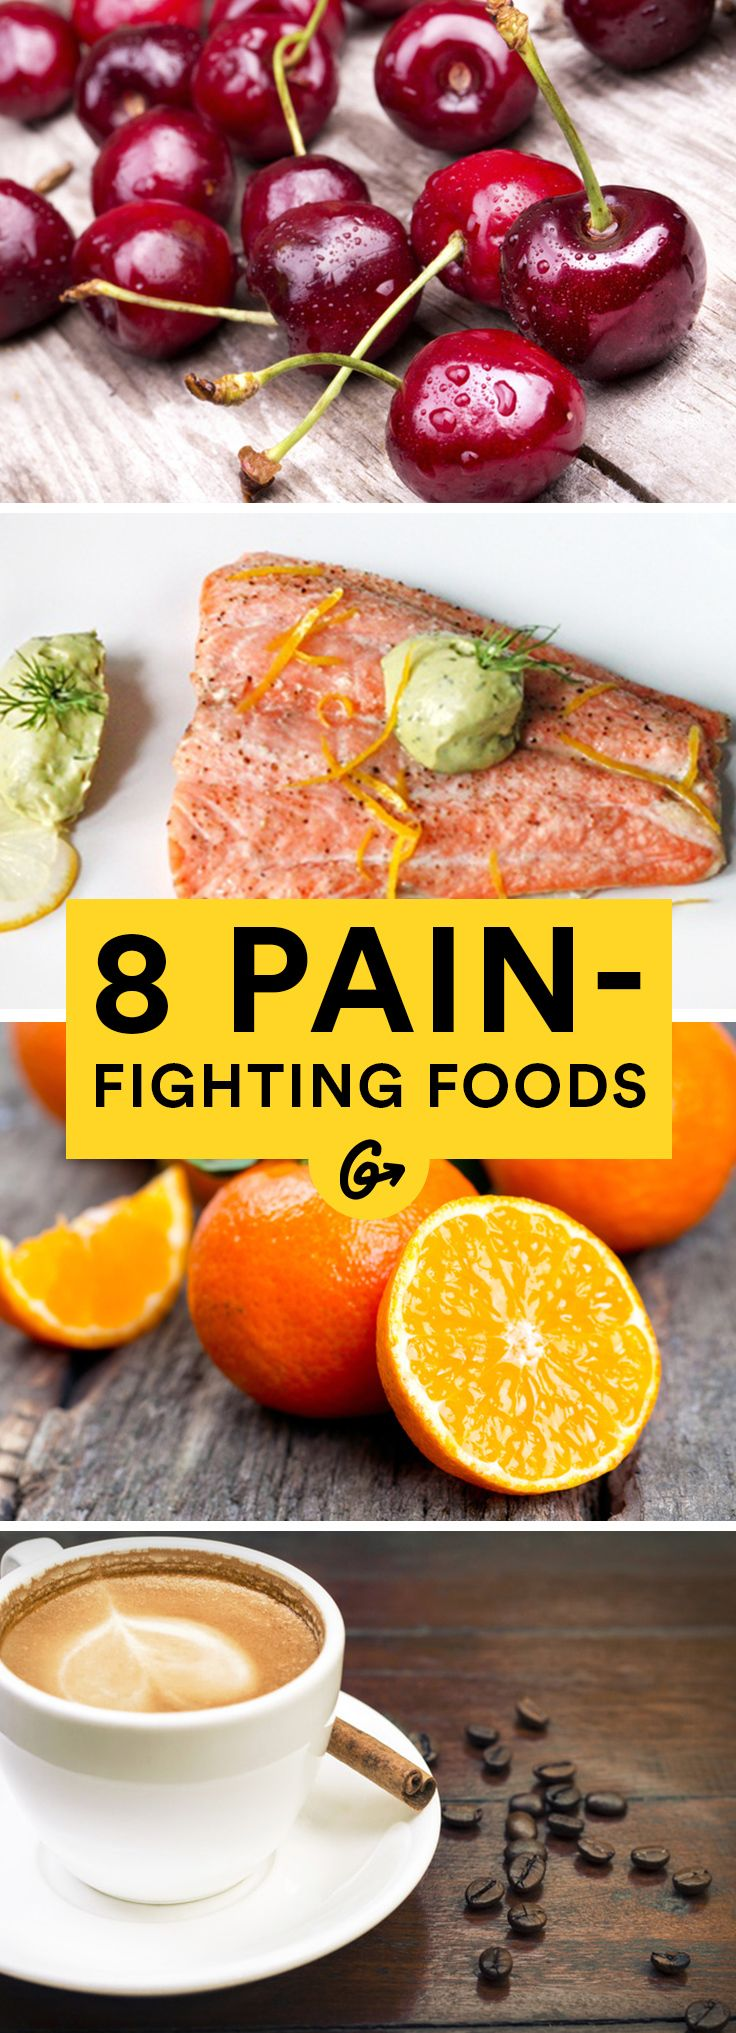 Greatist has compiled a list of everyday foods that fight pain. #pain #fighting #foods http://greatist.com/health/foods-pain-relief